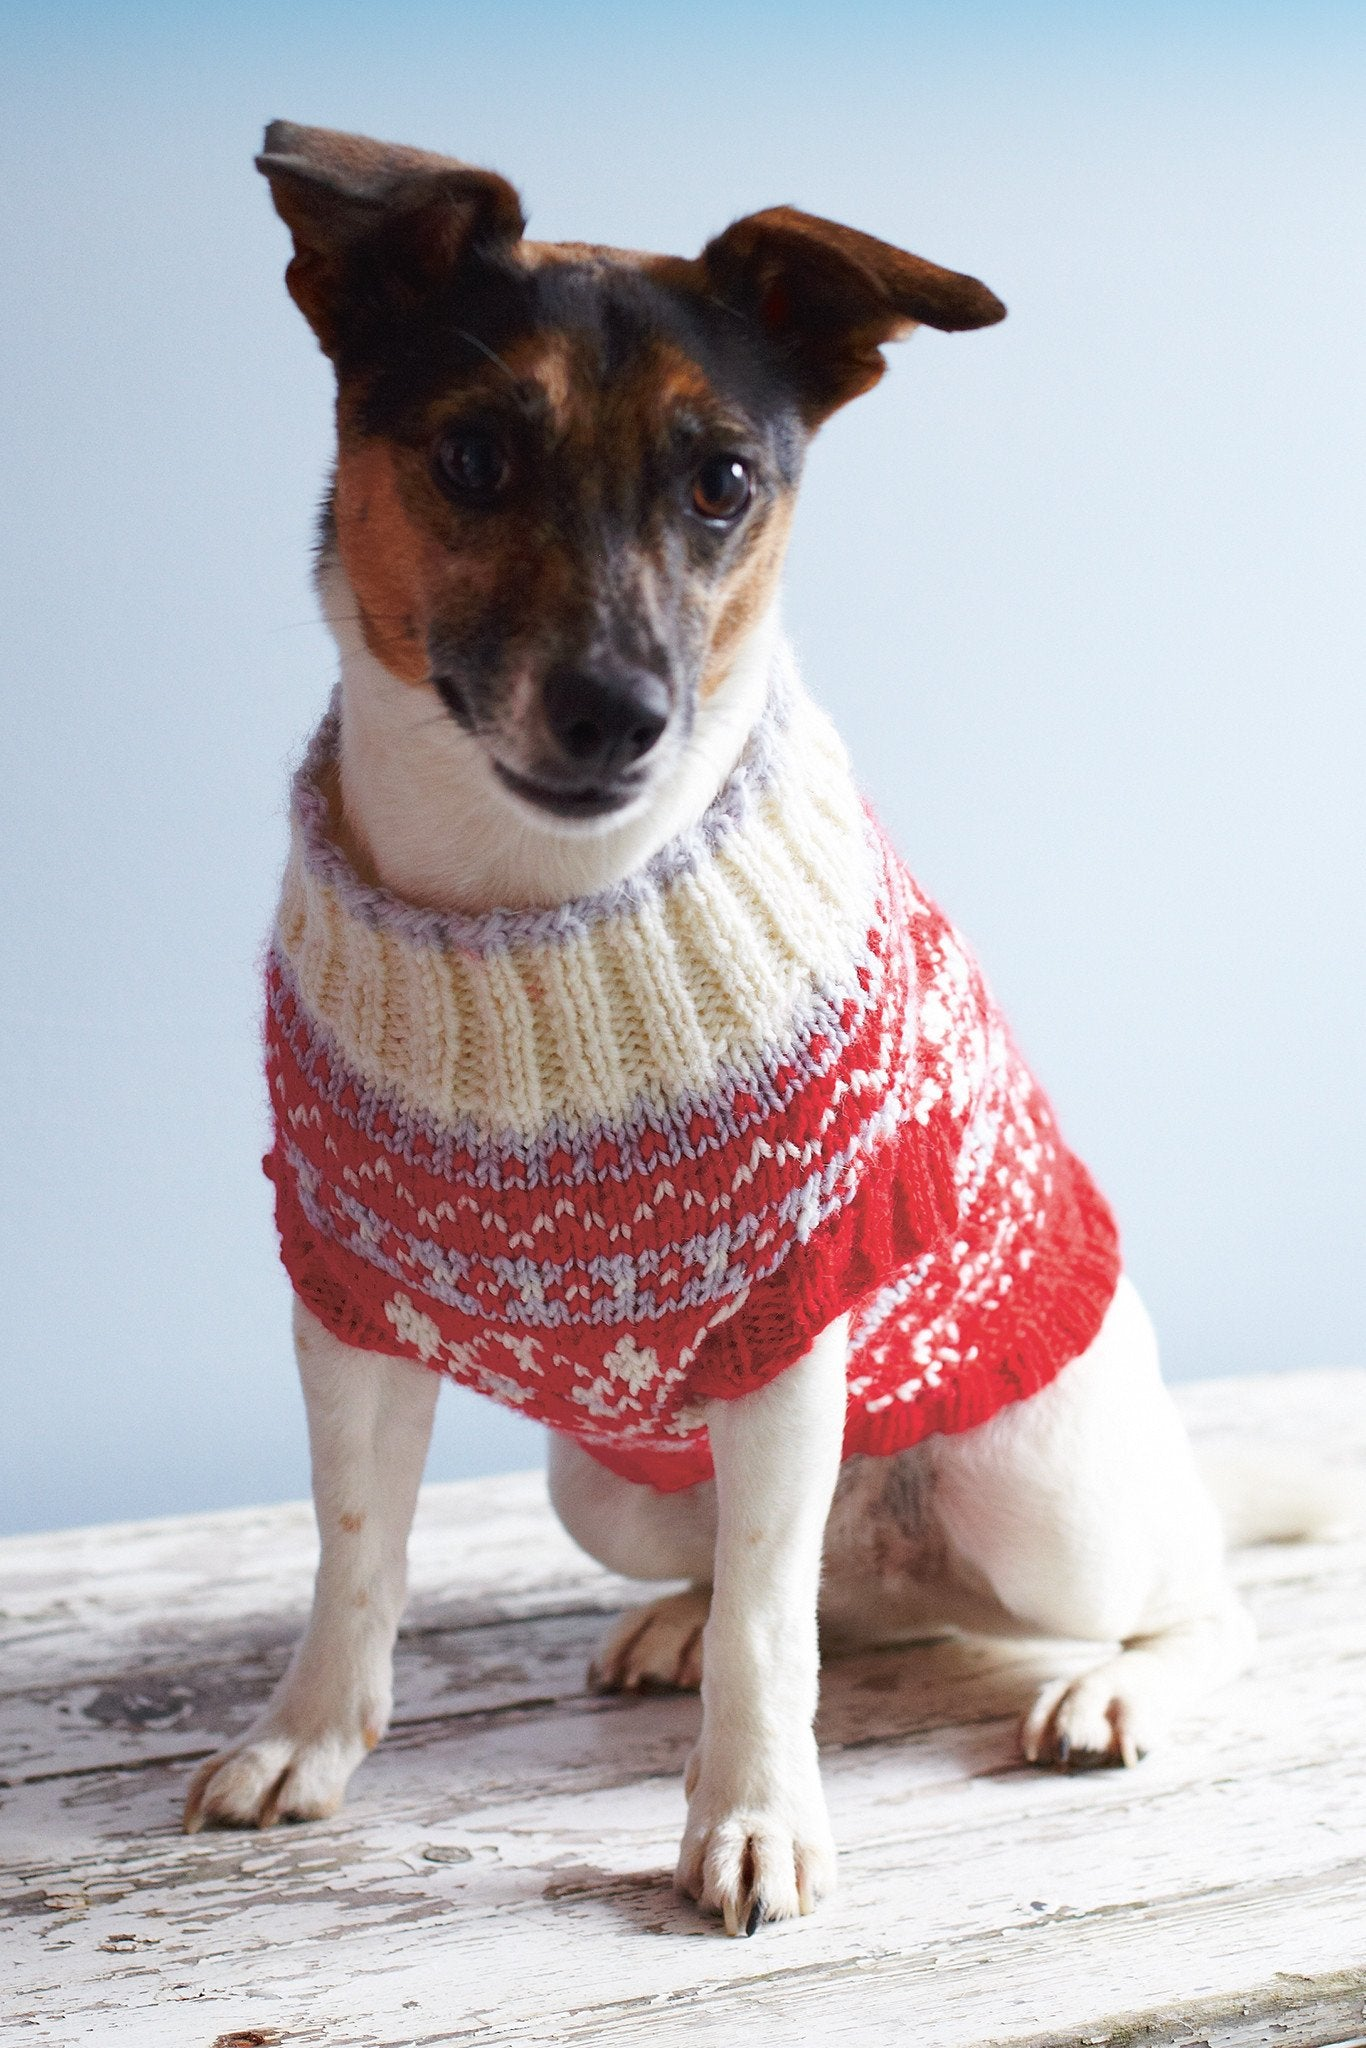 Dog Coat Knitting Pattern – The Knitting Network